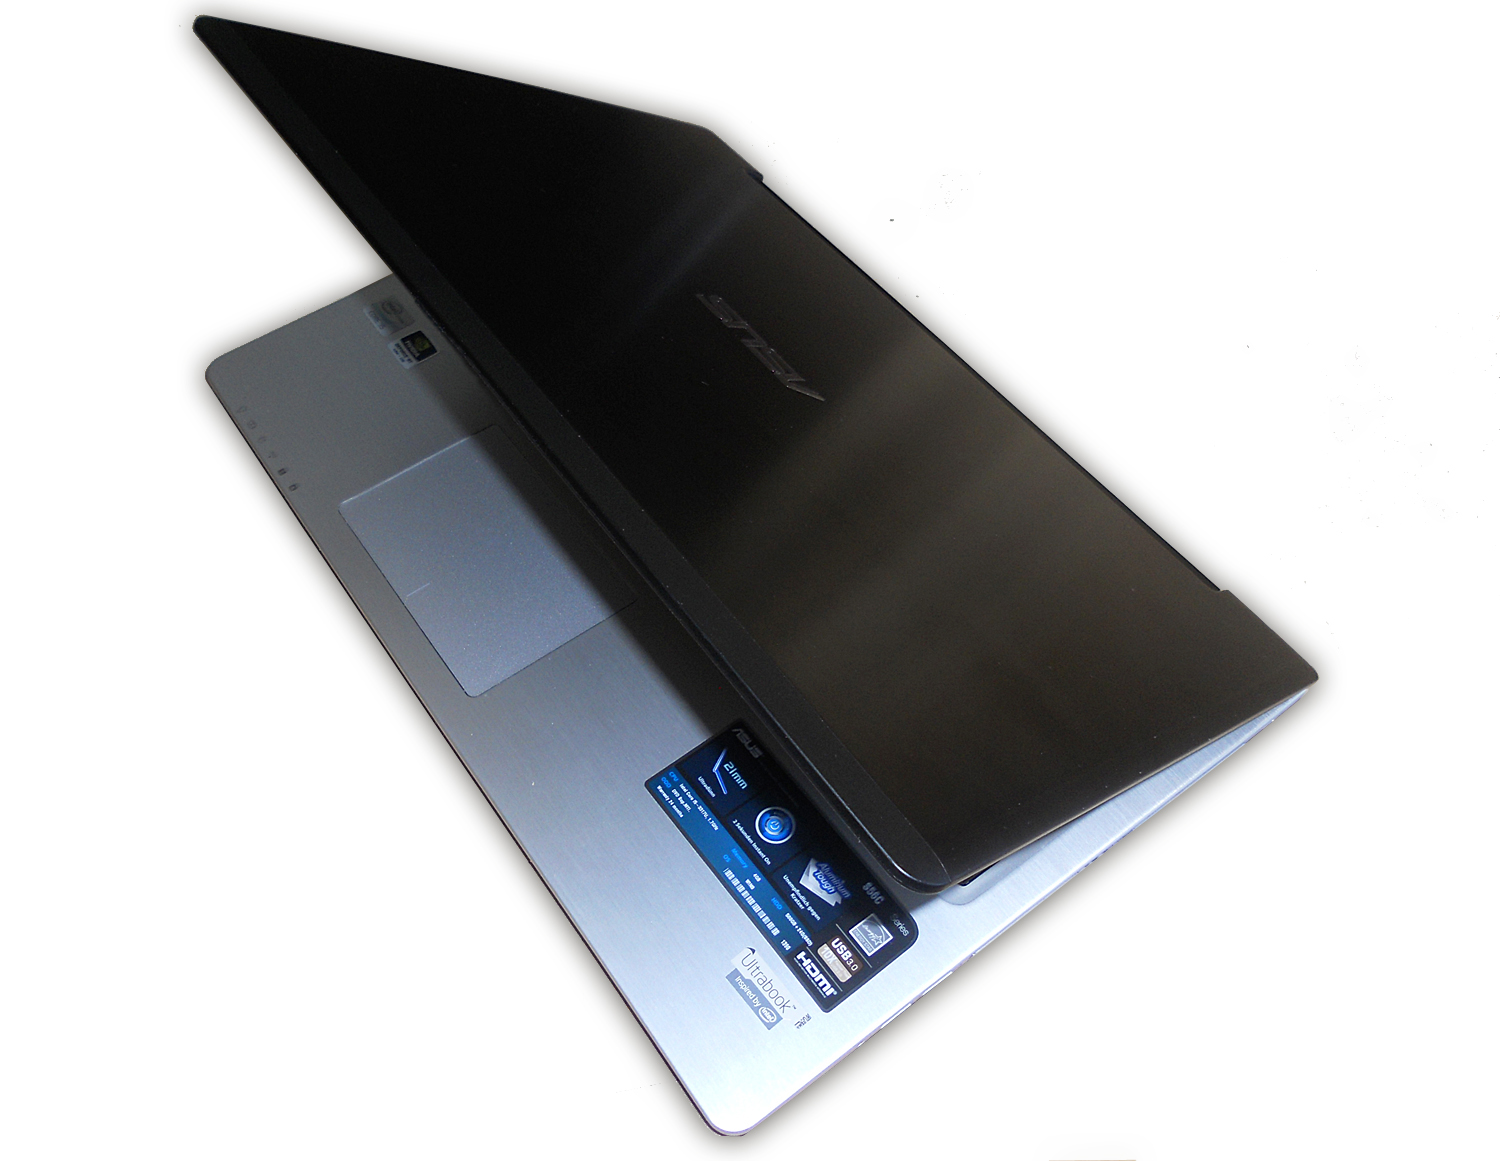 ASUS S56CM CARDREADER WINDOWS 7 DRIVER DOWNLOAD